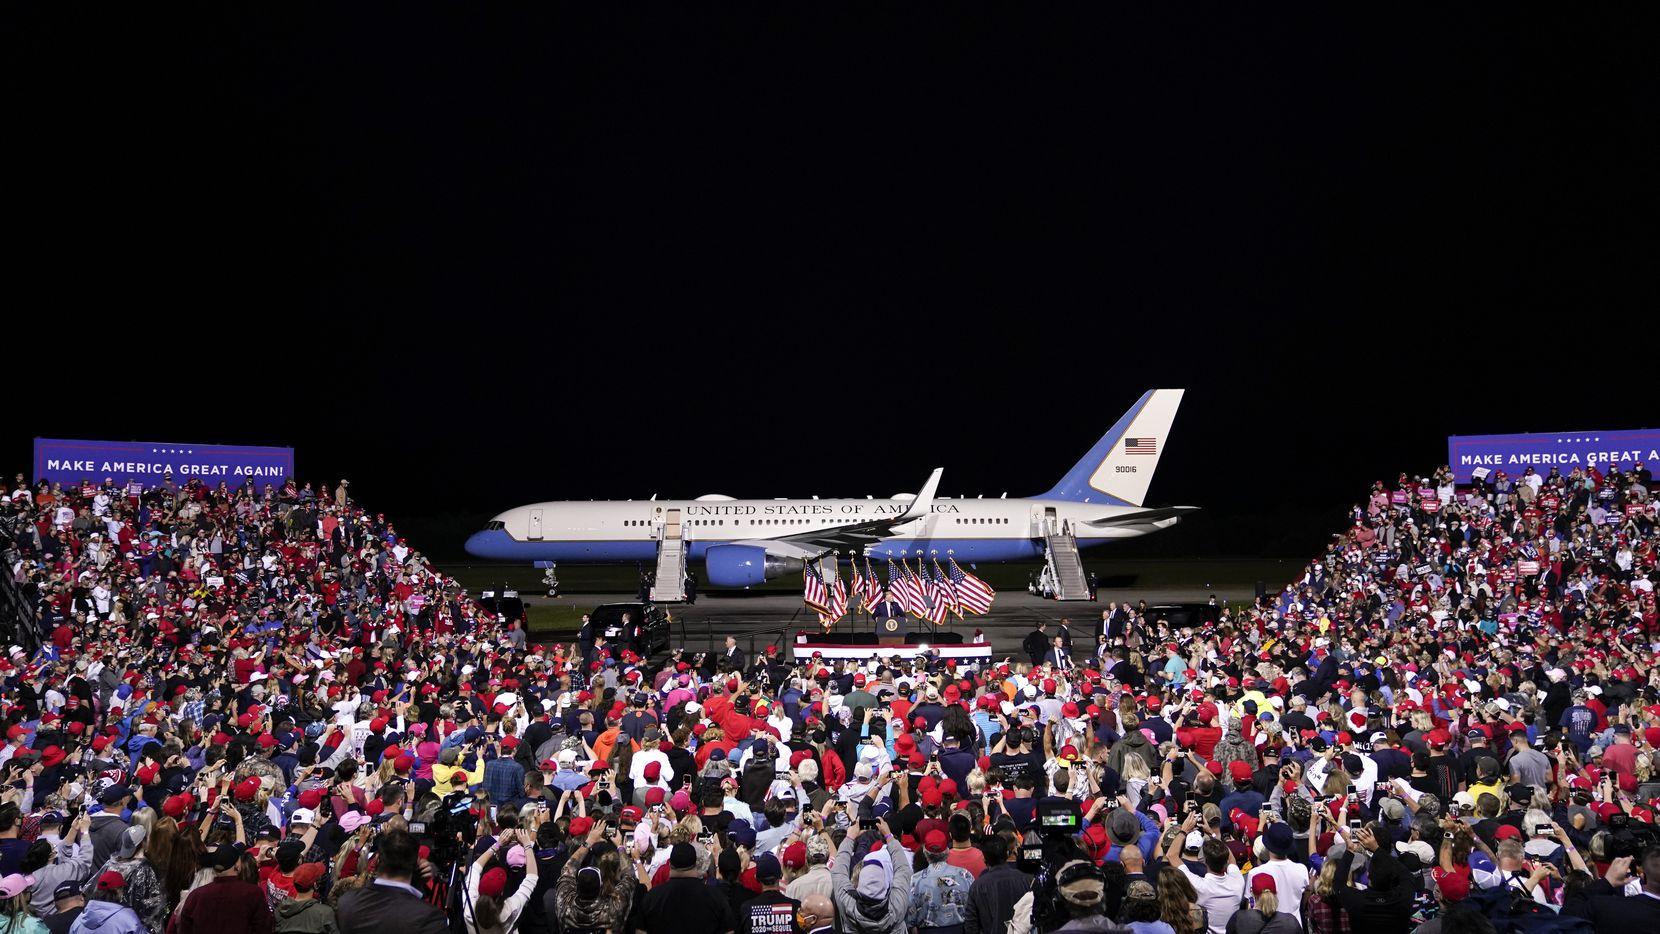 With Air Force One behind him, President Donald Trump campaigns at a rally that drew thousands of supporters to Newport News/Williamsburg International Airport on Sept. 25, 2020 in Newport News, Va.